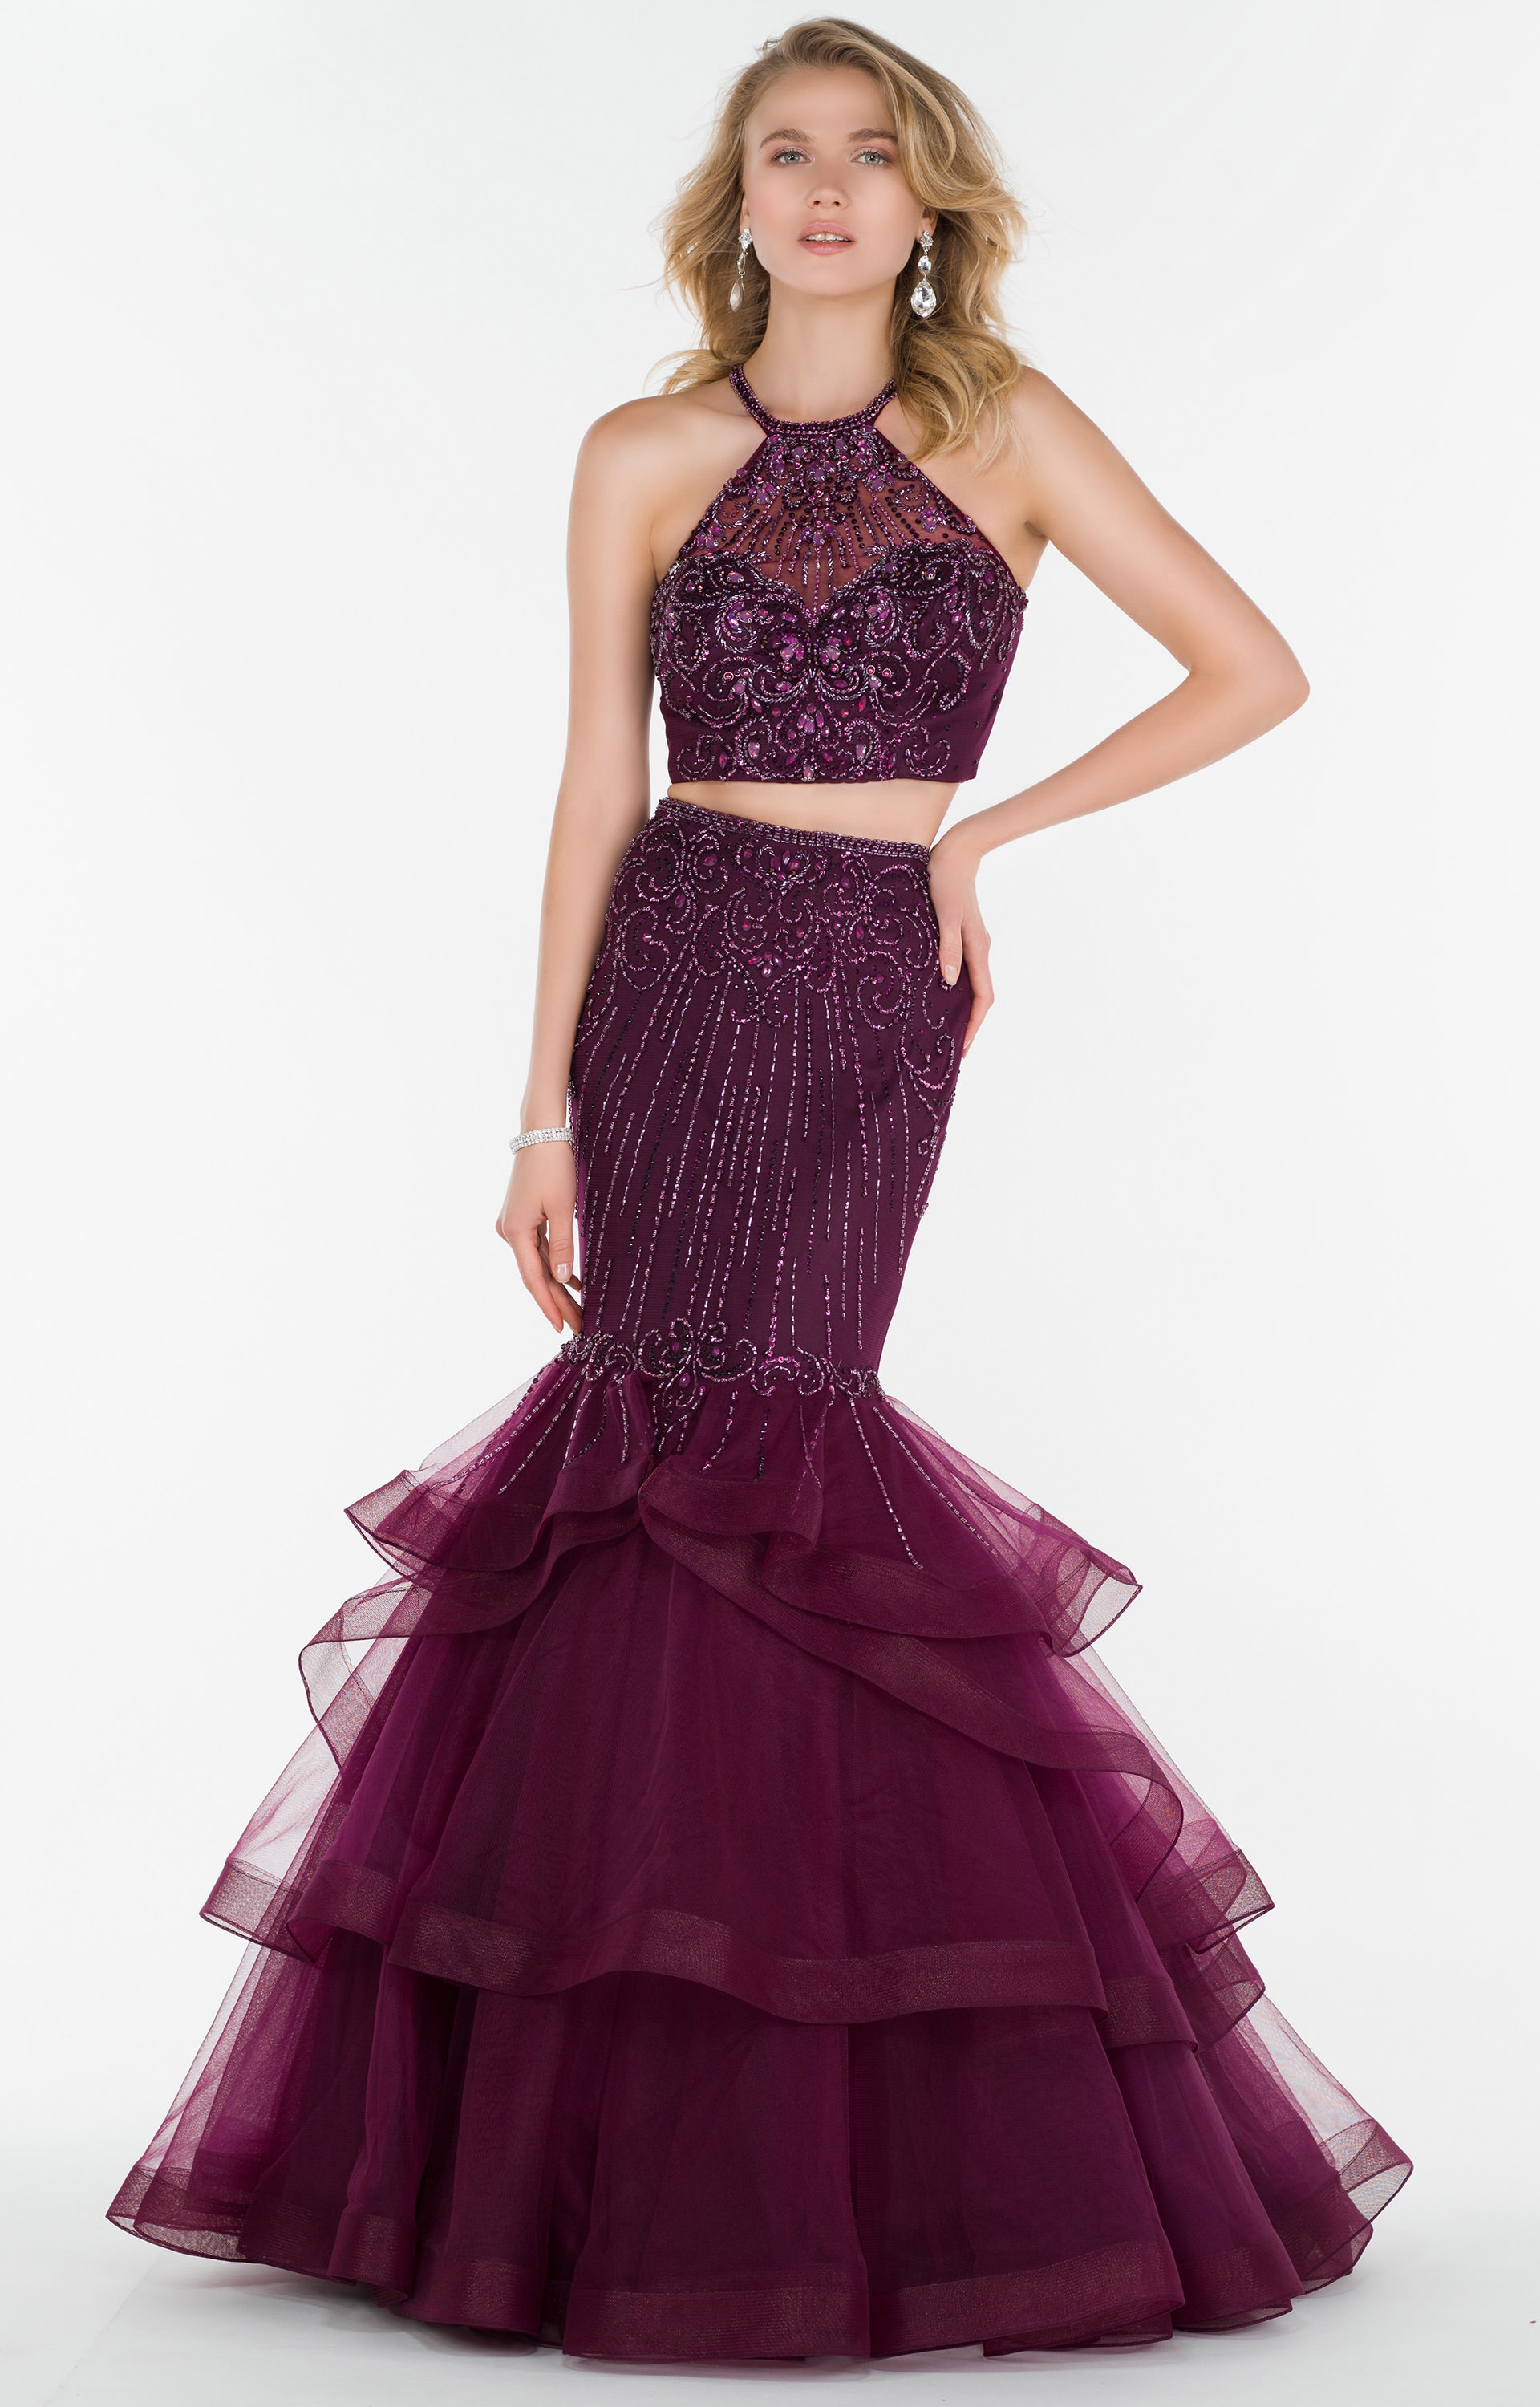 Alyce Paris 6756 - 2 Piece Tulle with Horsehair Hemline Skirt and ...